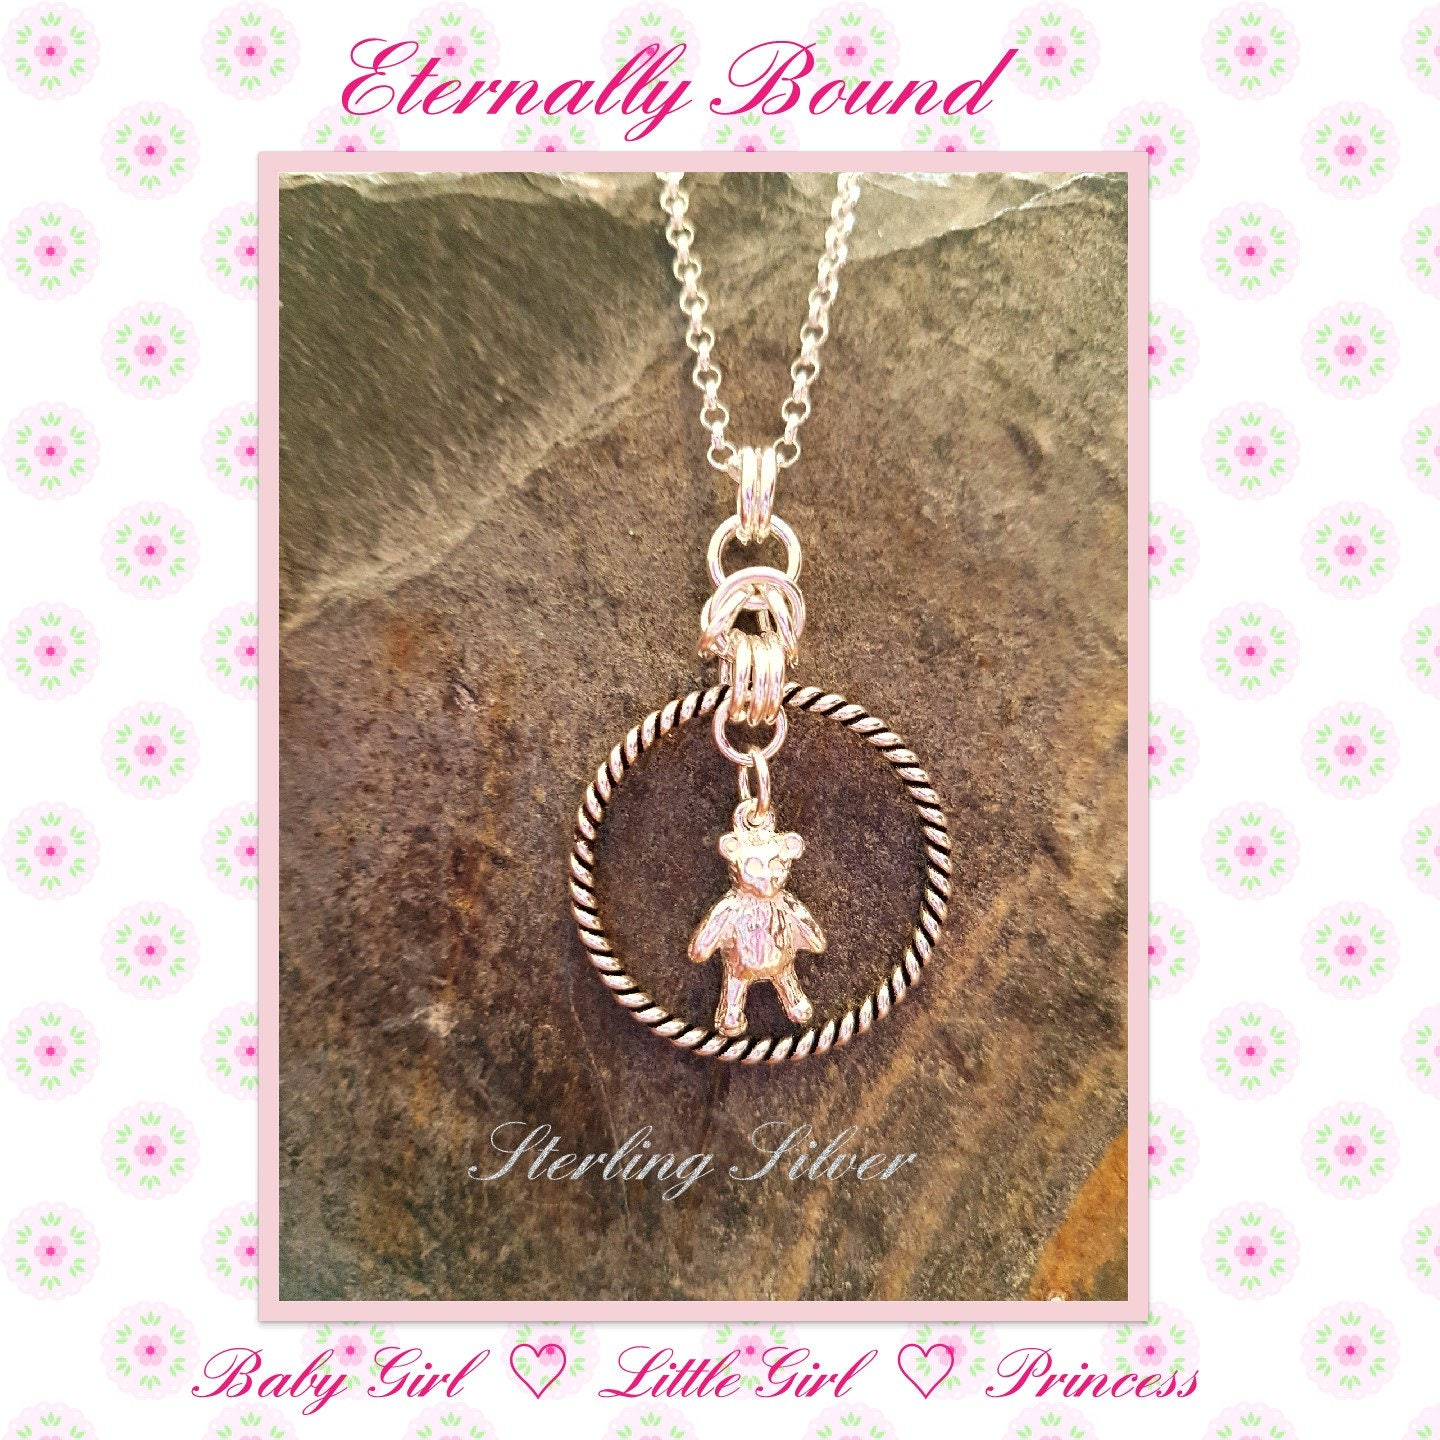 BDSM Sterling Silver Discreet Day Collar  necklace. Rope style O Ring and Teddy Charm DDLG Baby Girl Little Girl PrincessSubmissive